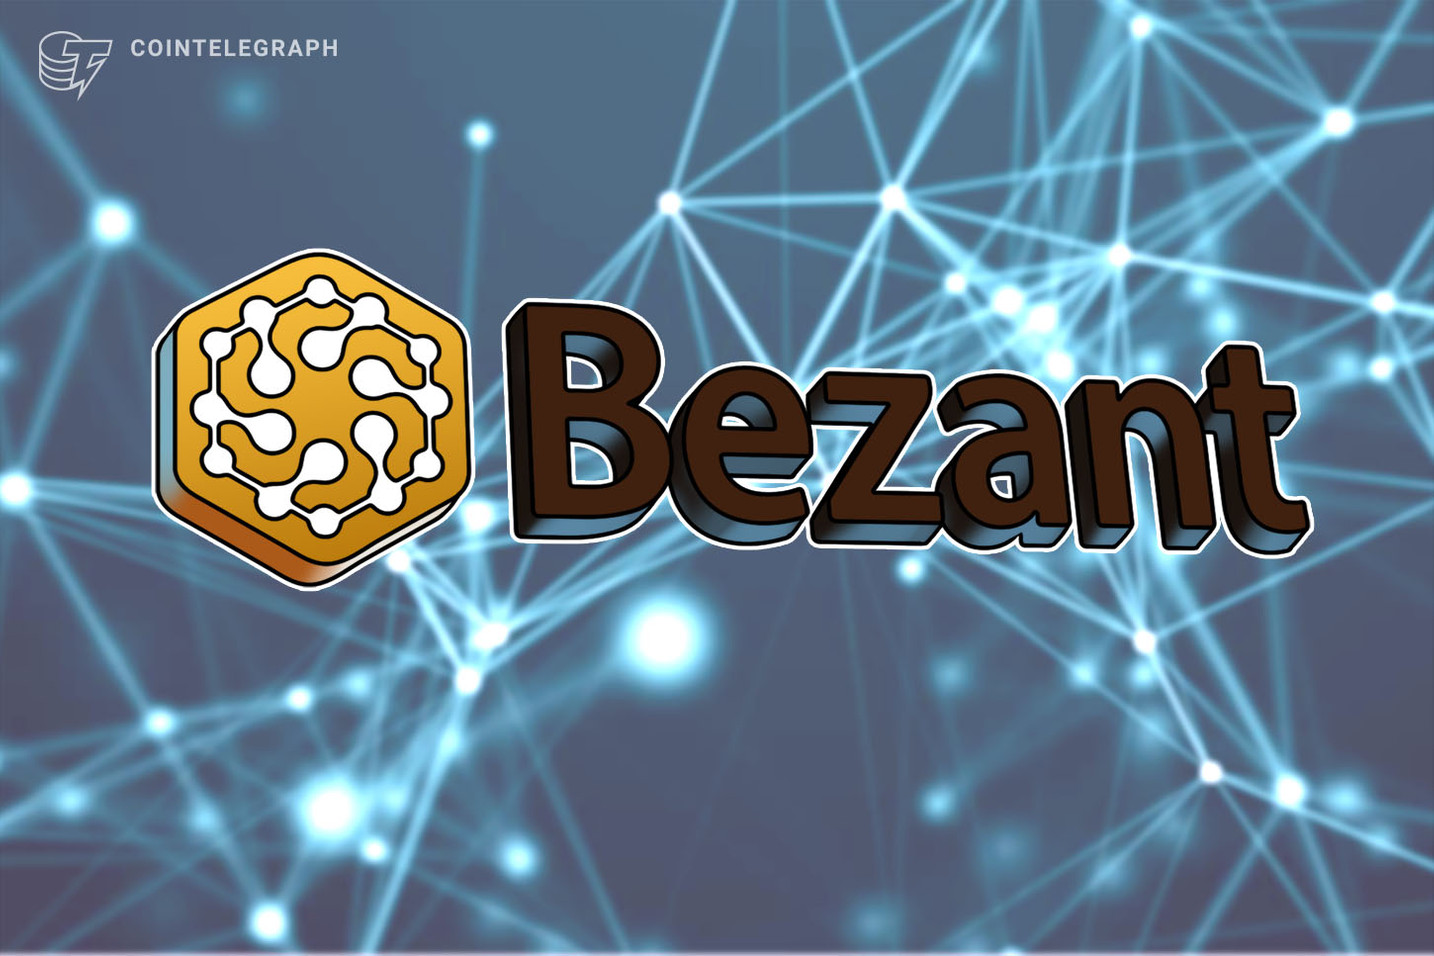 Bezant: the Fastest ICO Project in Asia Reveals P2P Lending Blockchain Real Use Case and Hints at Possible Binance Main Exchange Listing